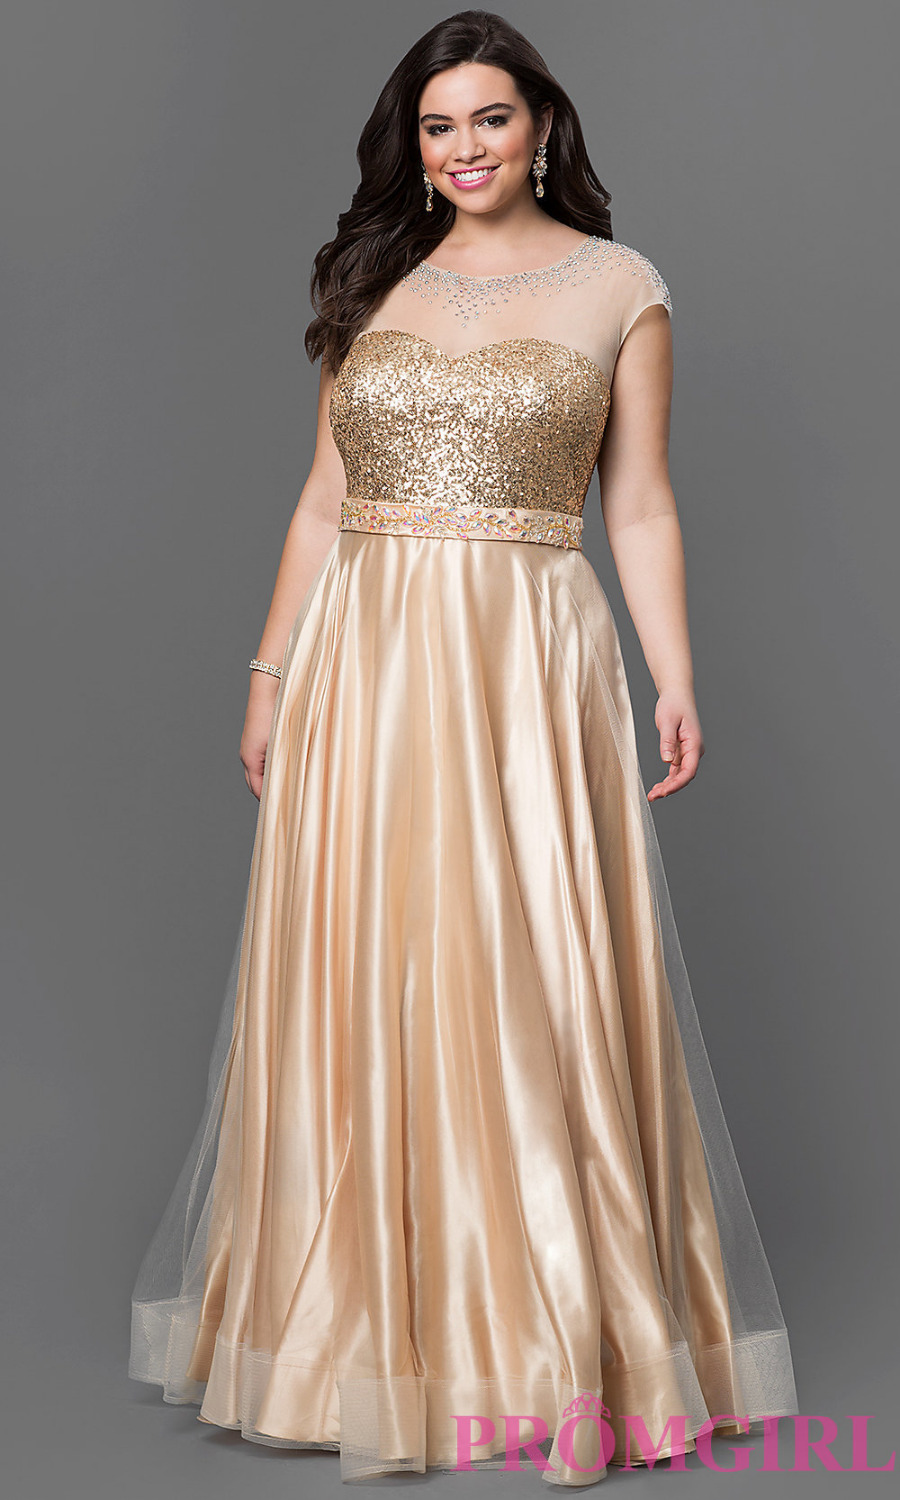 Plus Size Evening Dresses 2016 Gold Plus Size Dress Sheer ...